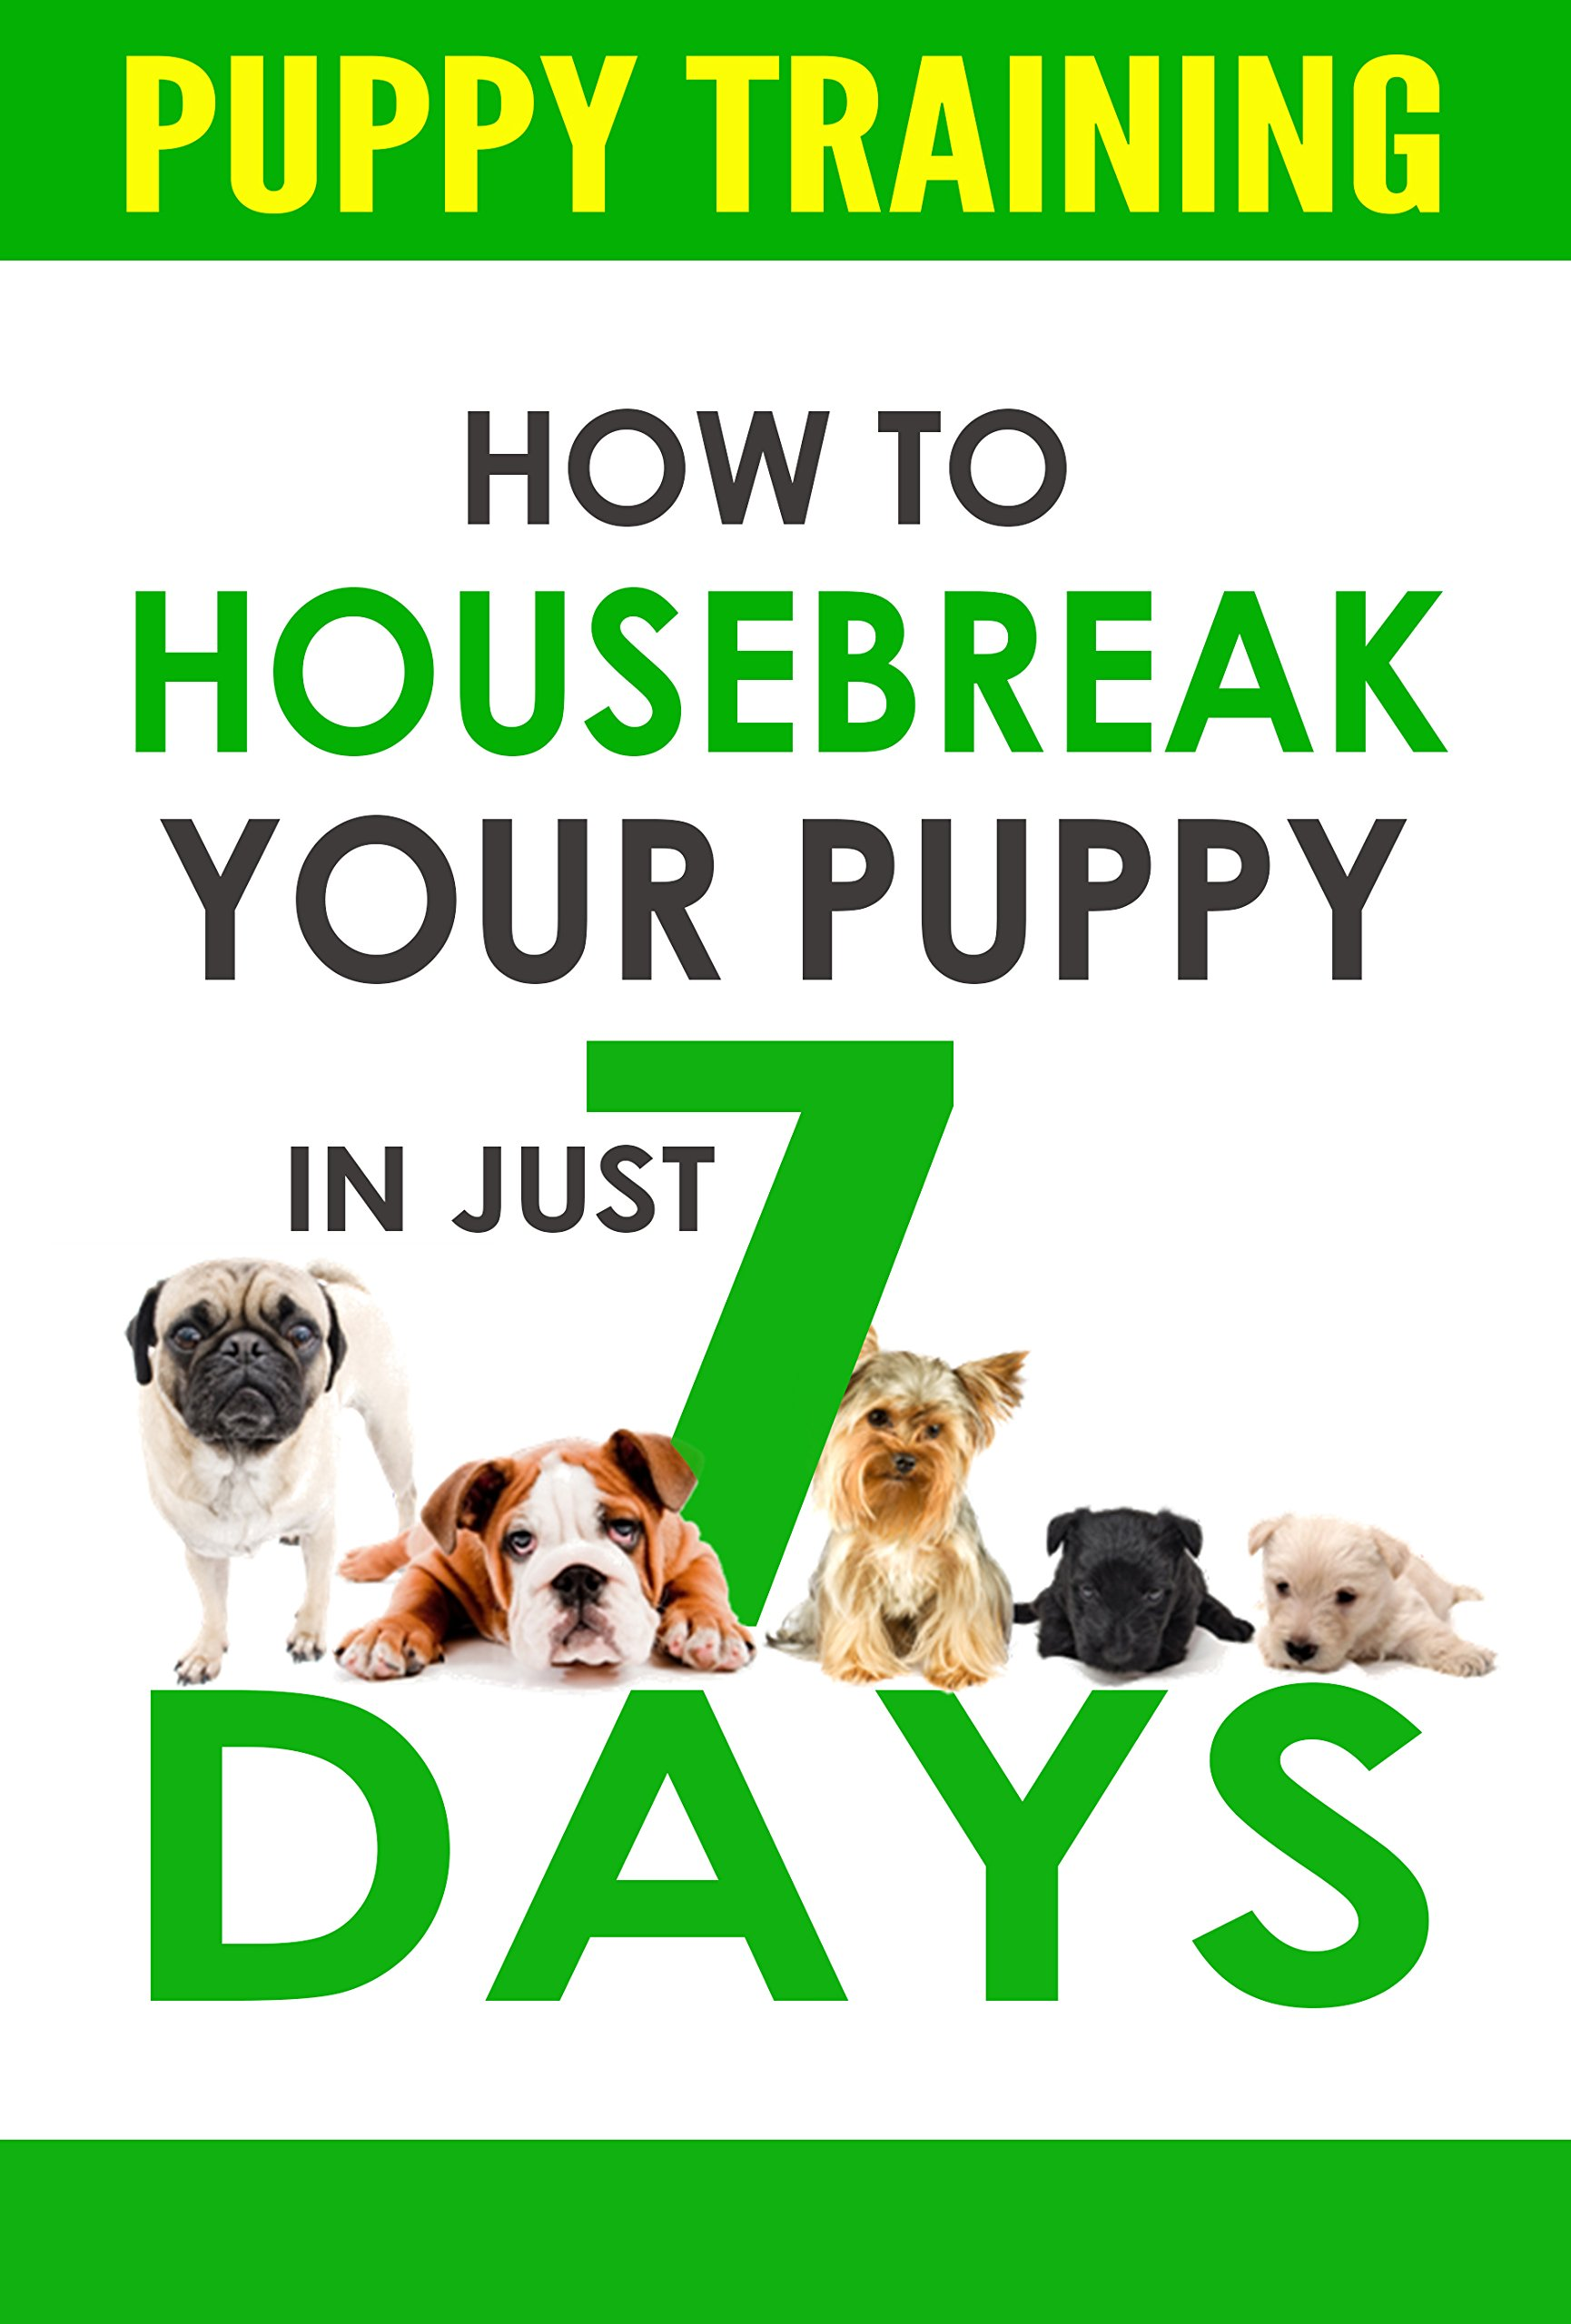 Puppy Training: How to Housebreak Your Puppy In Just 7 Days (puppy training, dog training, puppy house breaking, puppy…